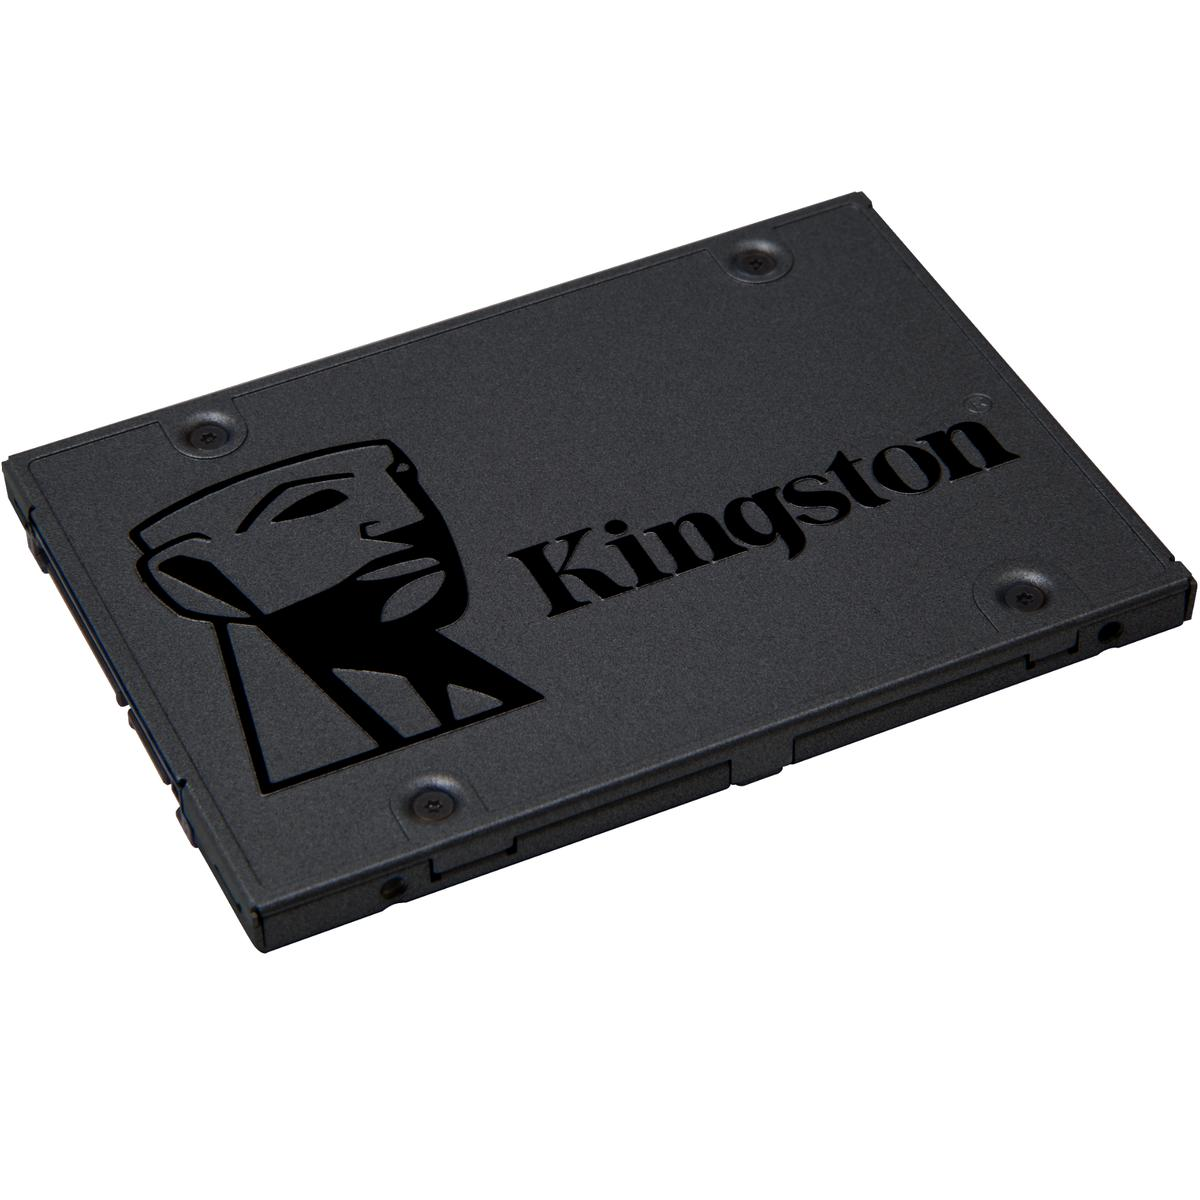 """Kingston A400 240 GB 2.5"""" Solid State Drive"""